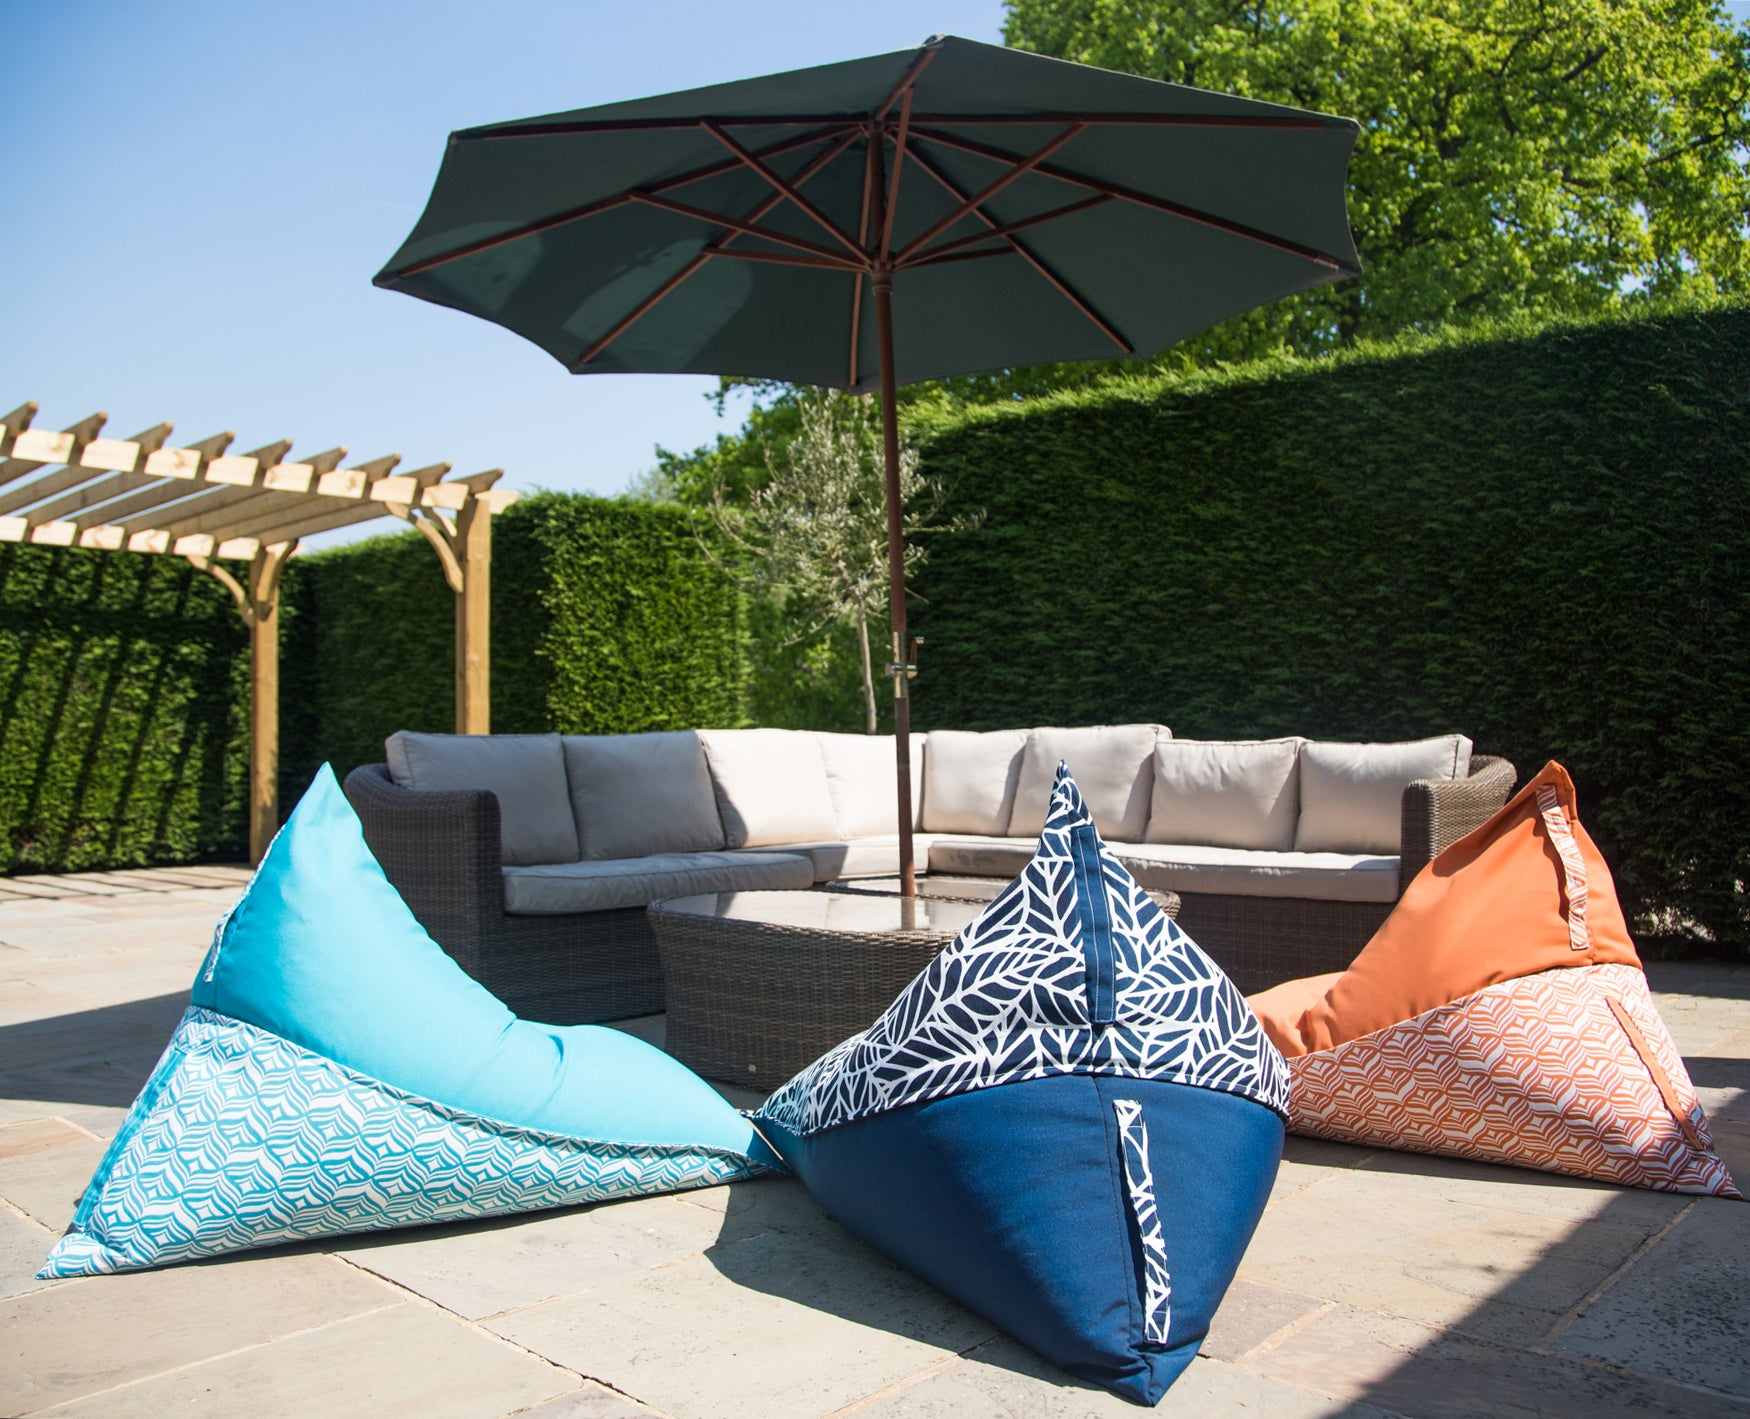 Outdoor bean bag chairs in ocean, navy and orange ready for lounging on in the sunshine